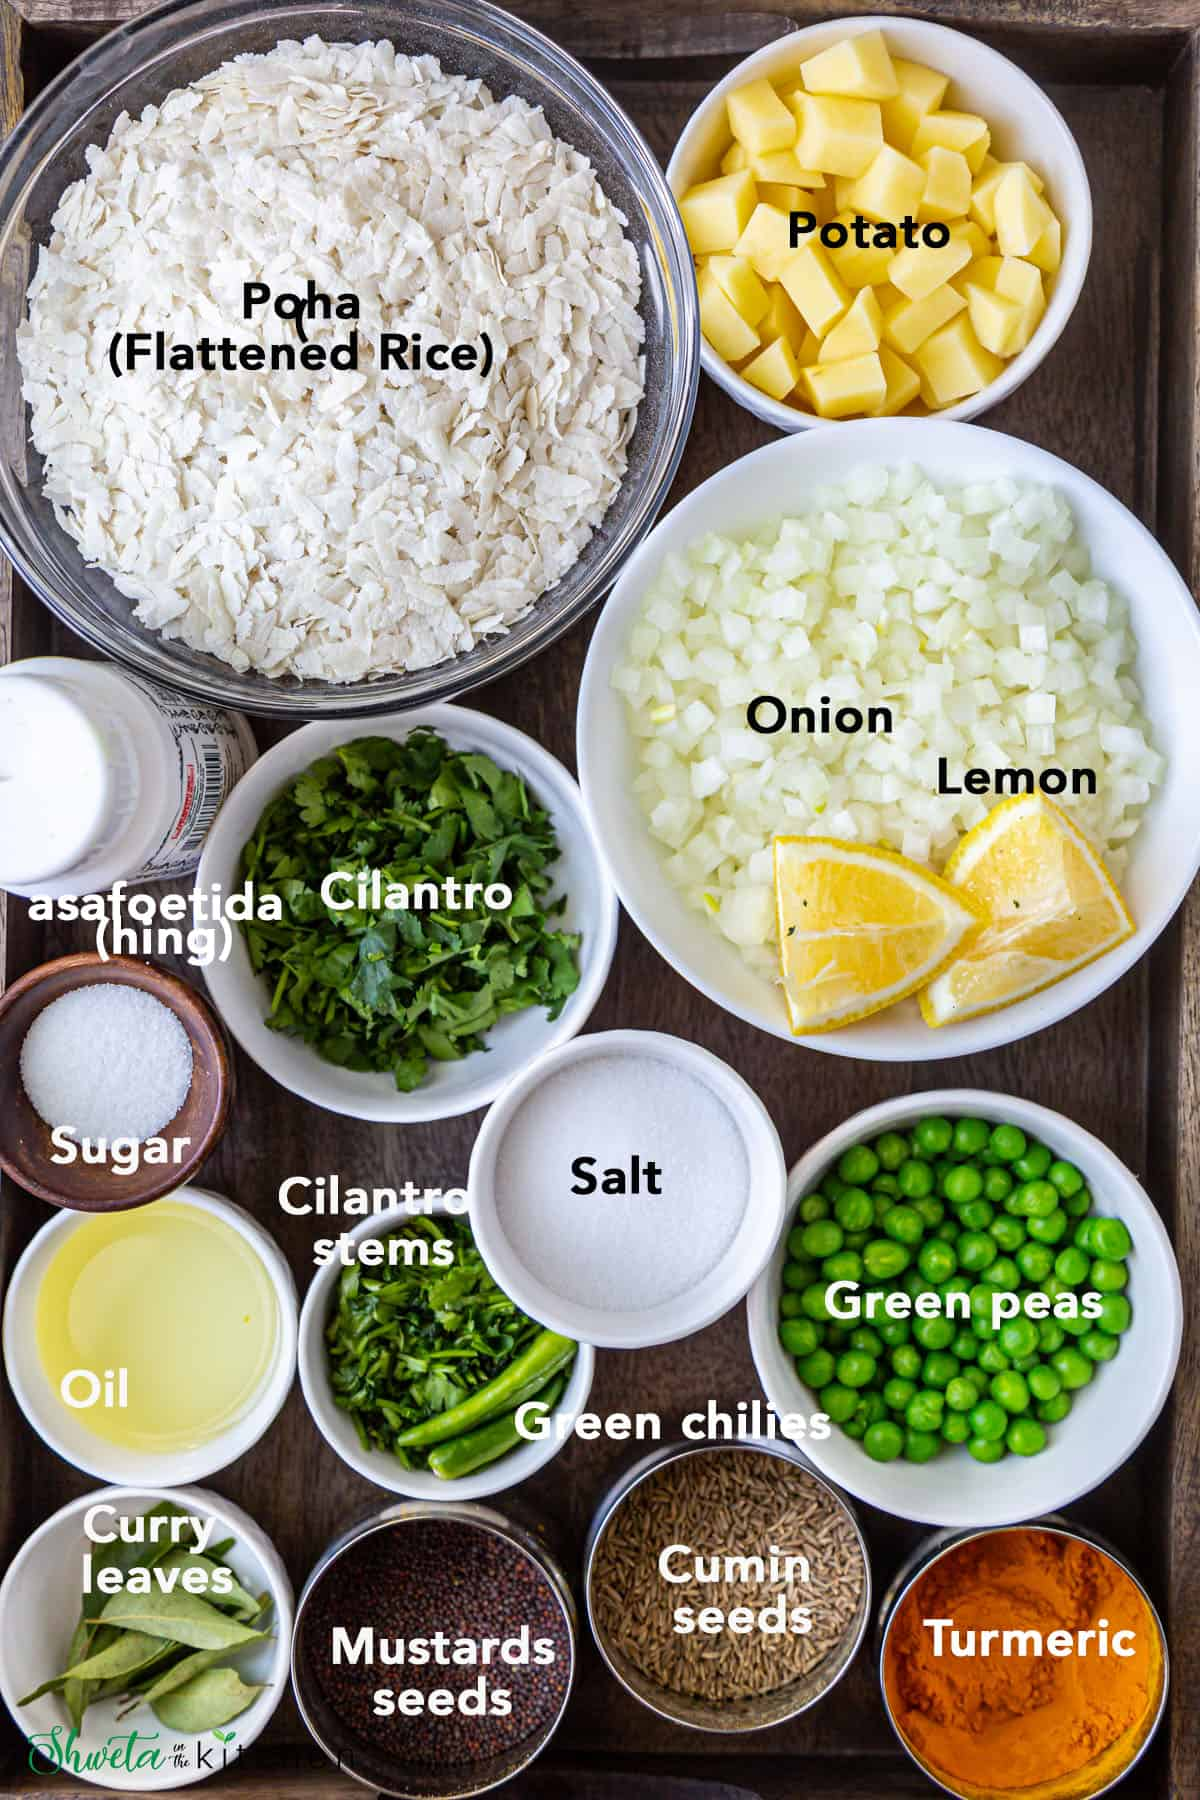 Ingredients for poha in bowls on wooden tray